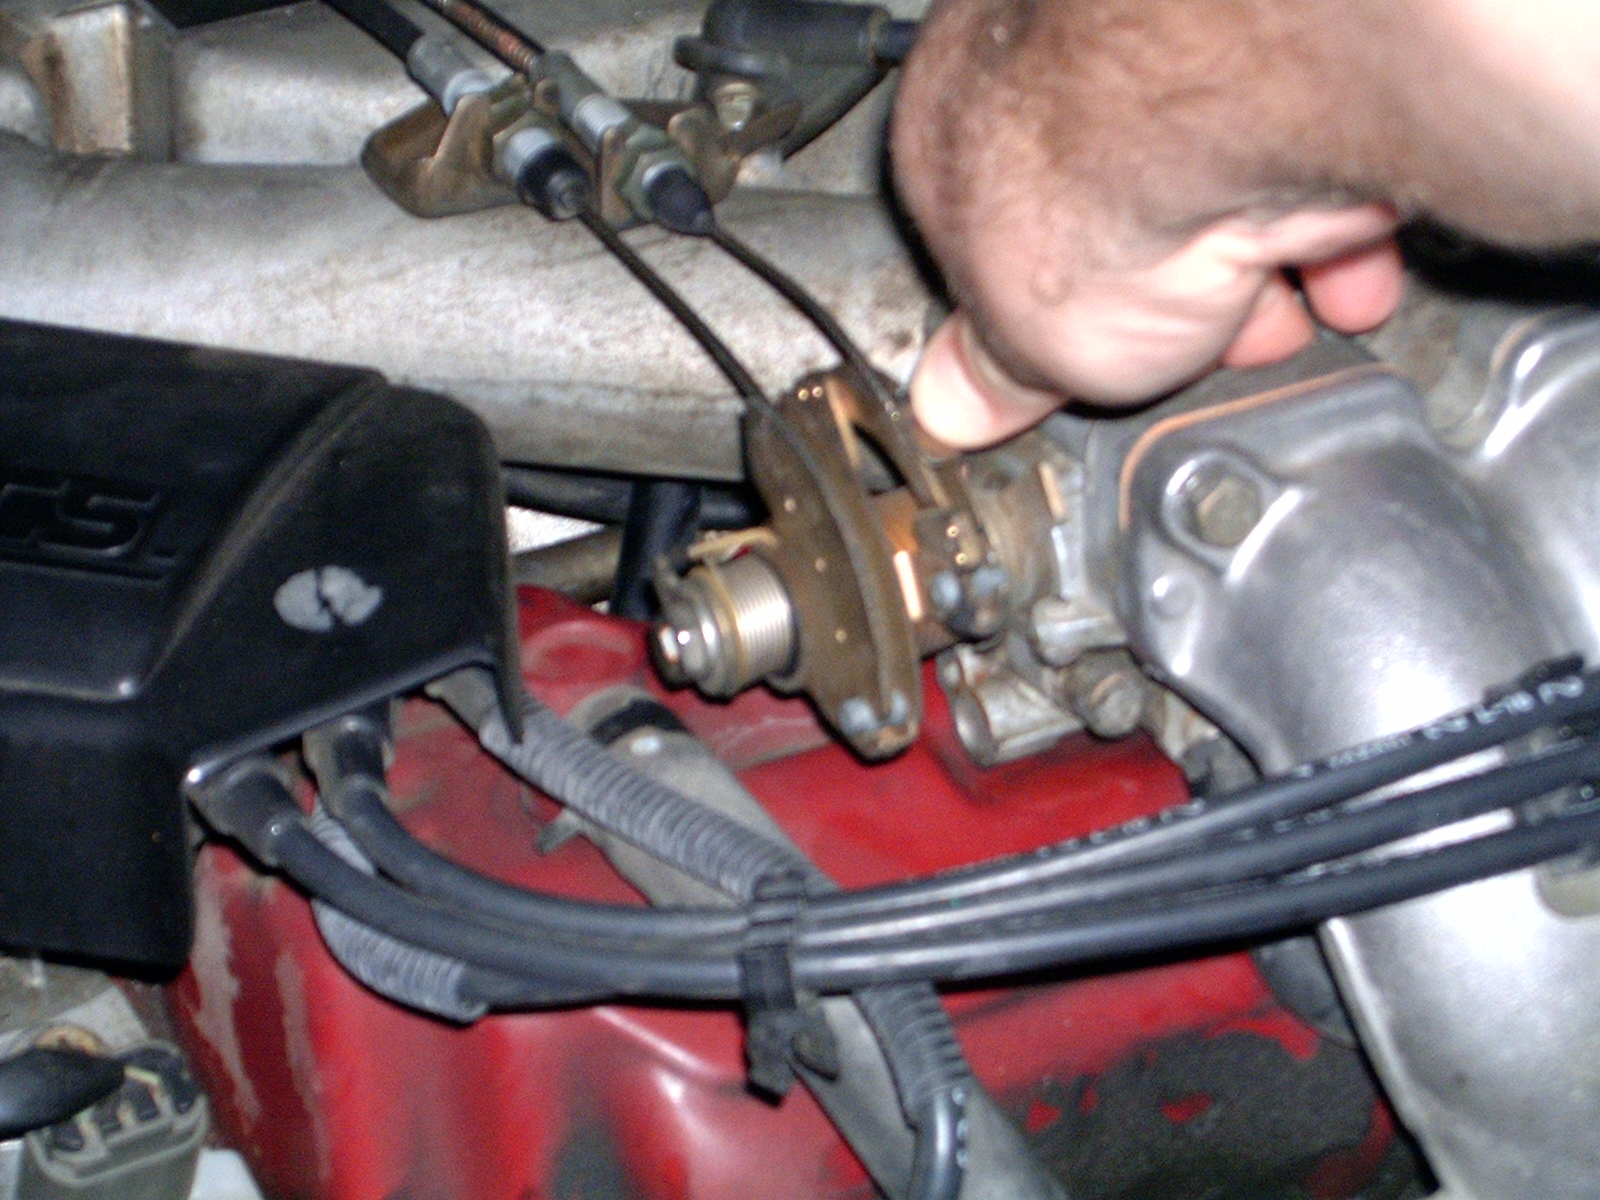 Nissan Maxima Fuel Injector Change Tutorial on yamaha maxima wiring diagram, kia forte wiring diagram, 96 maxima wiring diagram, saturn astra wiring diagram, nissan juke wiring diagram, 1999 maxima wiring diagram, mercury milan wiring diagram, nissan 300zx wiring-diagram, nissan leaf wiring diagram, saturn aura wiring diagram, nissan 370z wiring diagram, ford 500 wiring diagram, isuzu hombre wiring diagram, 1996 maxima wiring diagram, nissan altima wiring diagram, subaru baja wiring diagram, volvo amazon wiring diagram, nissan titan wiring-diagram, nissan wiring harness diagram, mitsubishi starion wiring diagram,